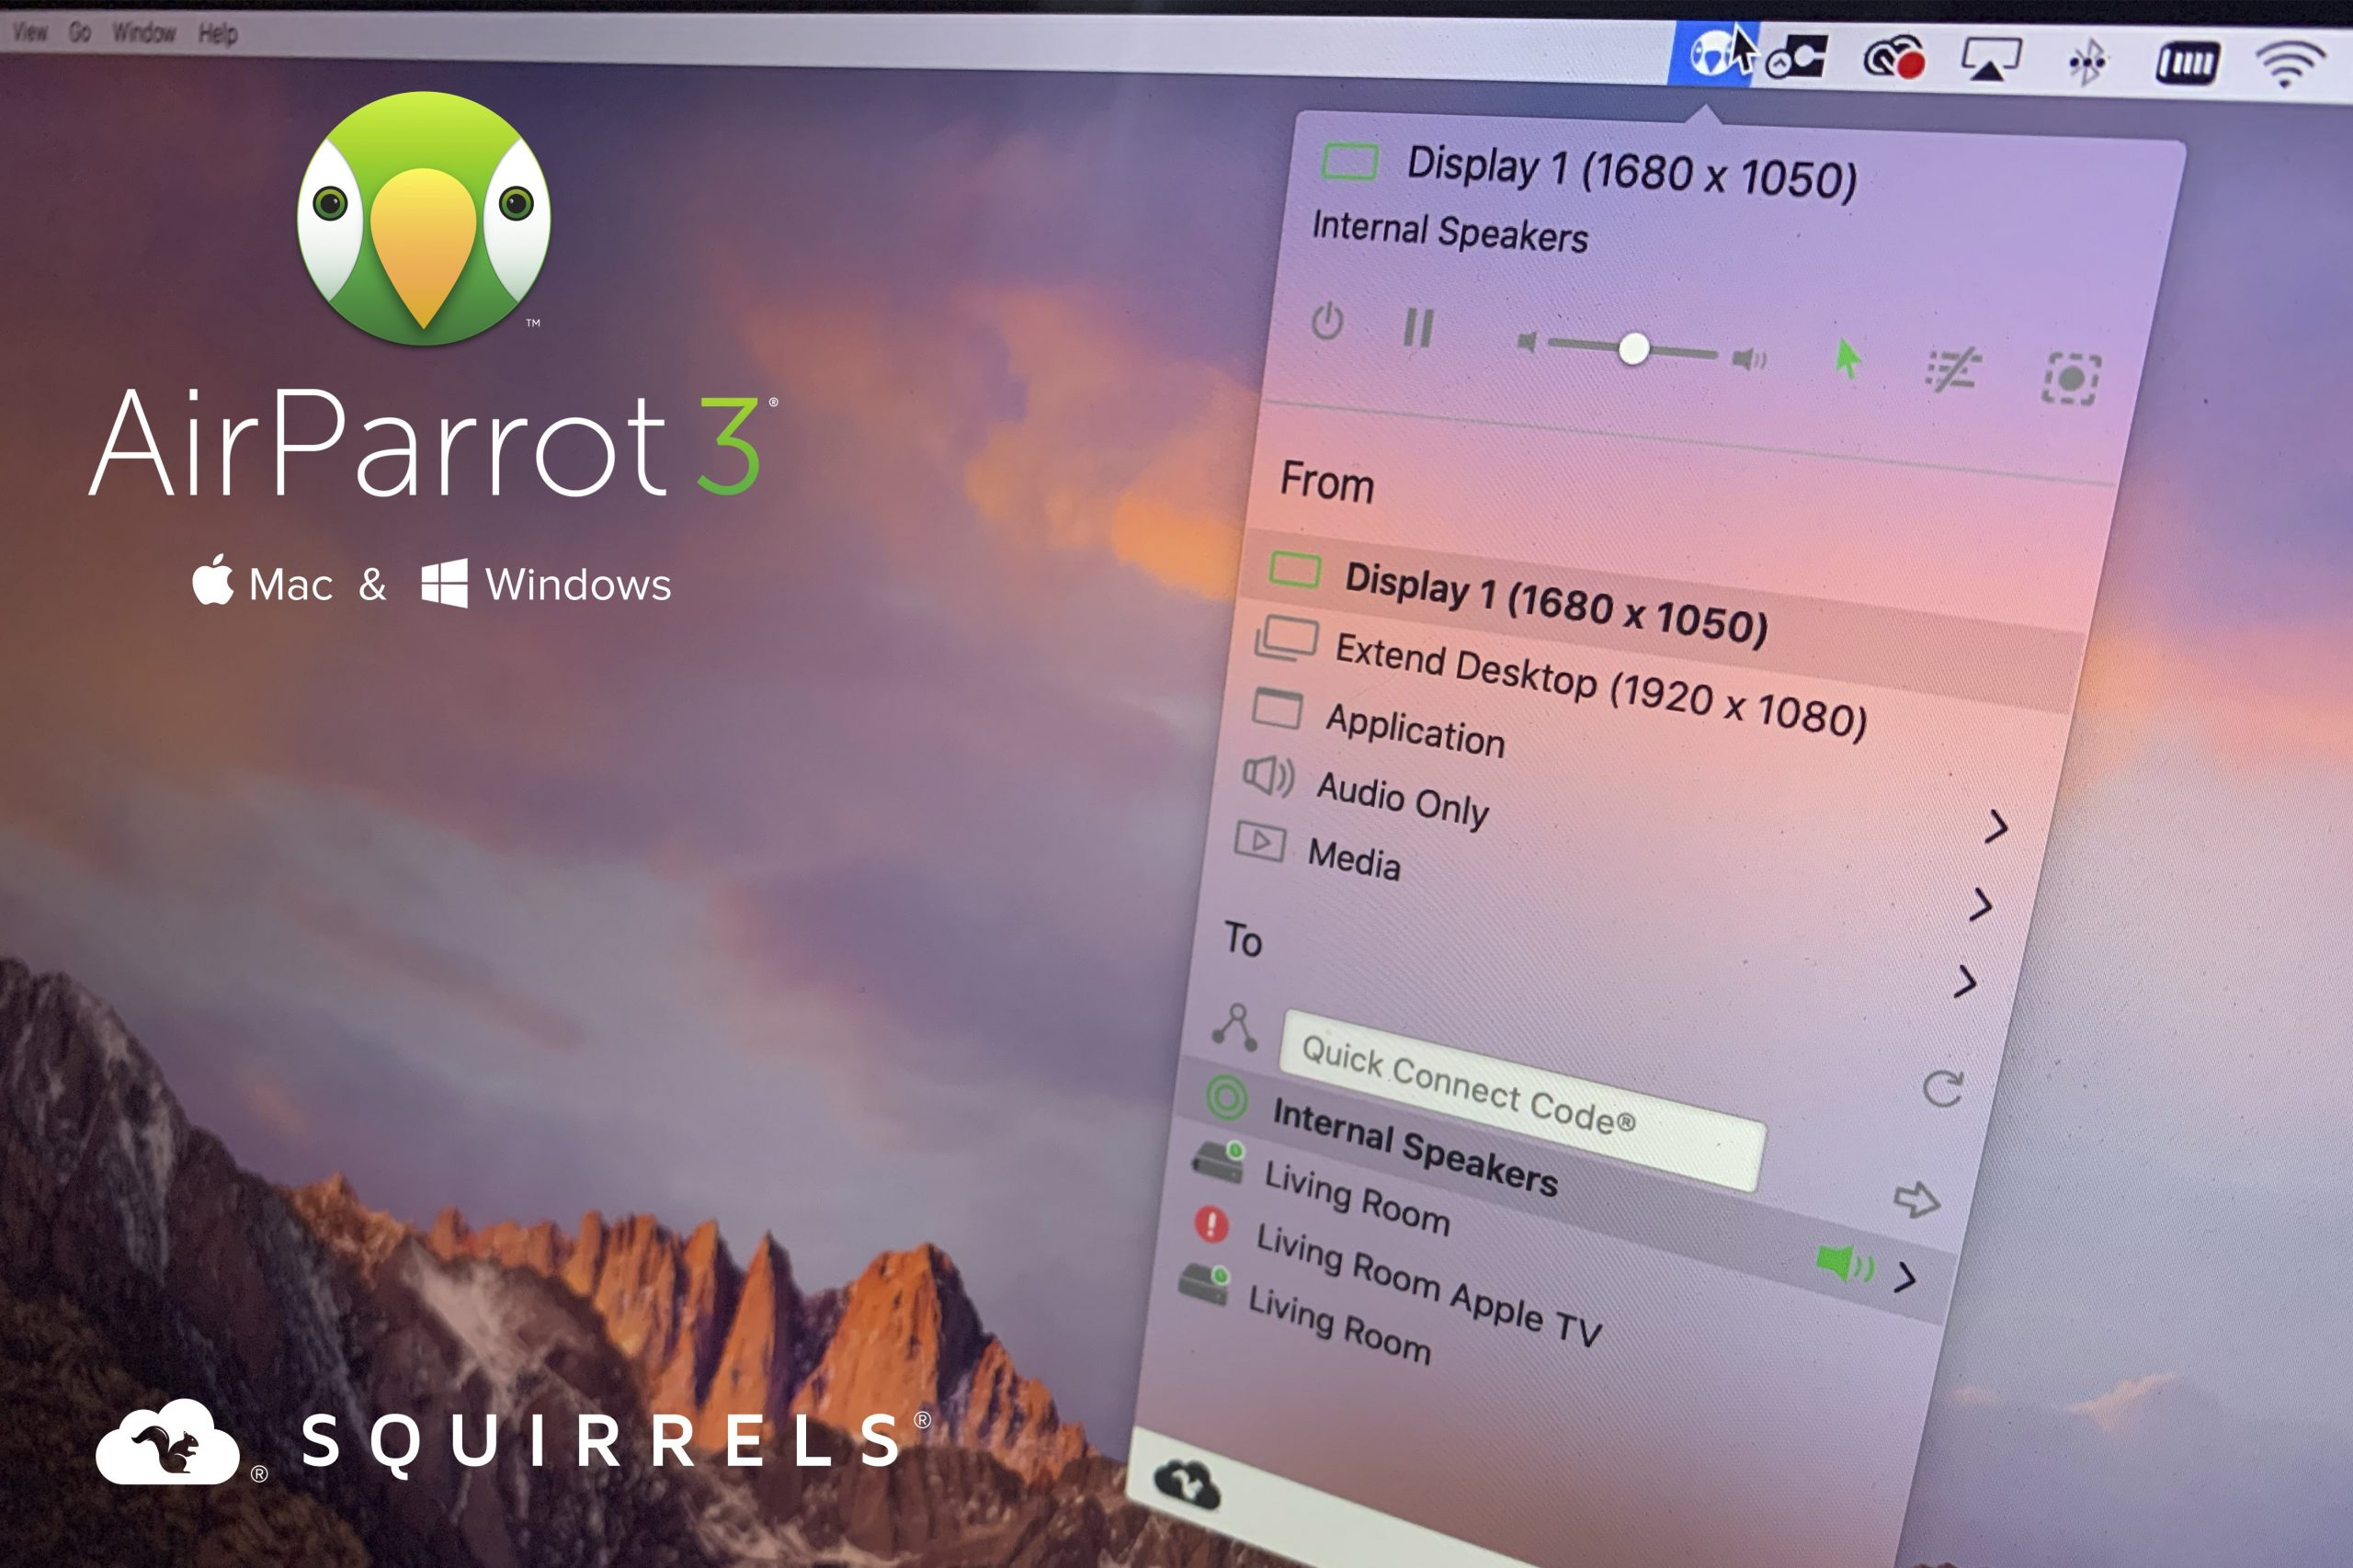 Airparrot Version 3